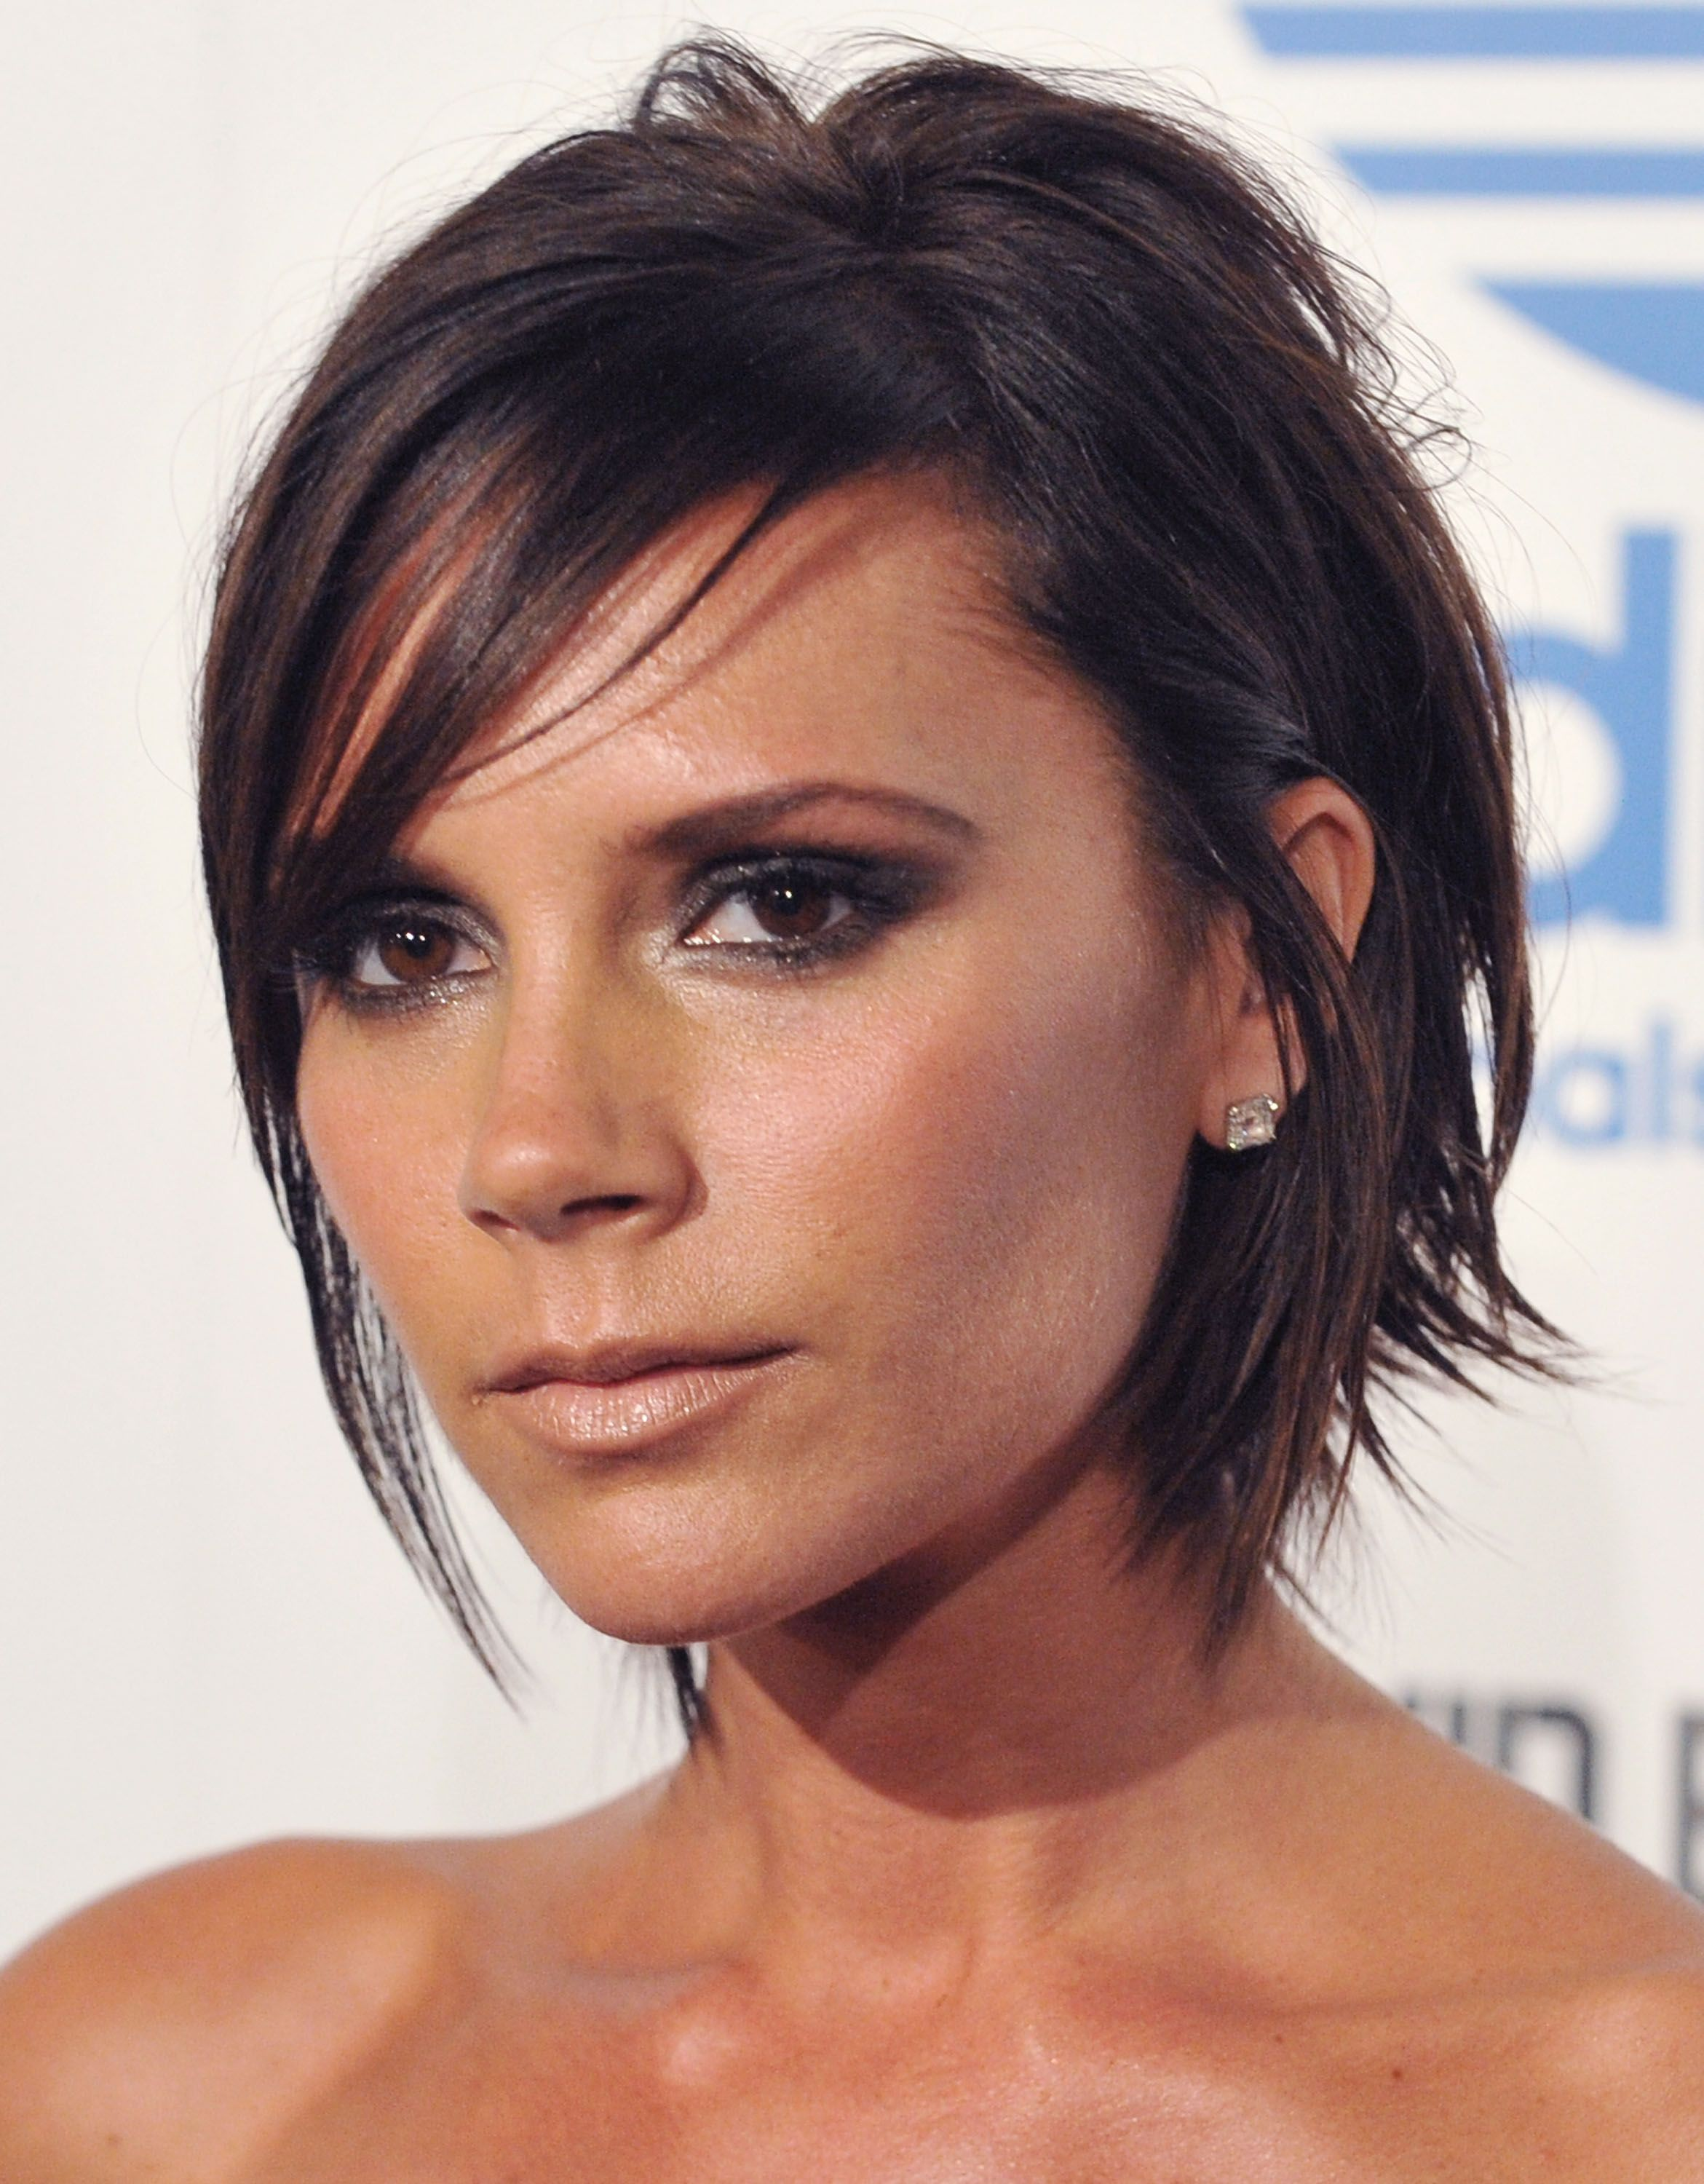 The 12 Most Iconic Hairstyles of All Time  Victoria beckham